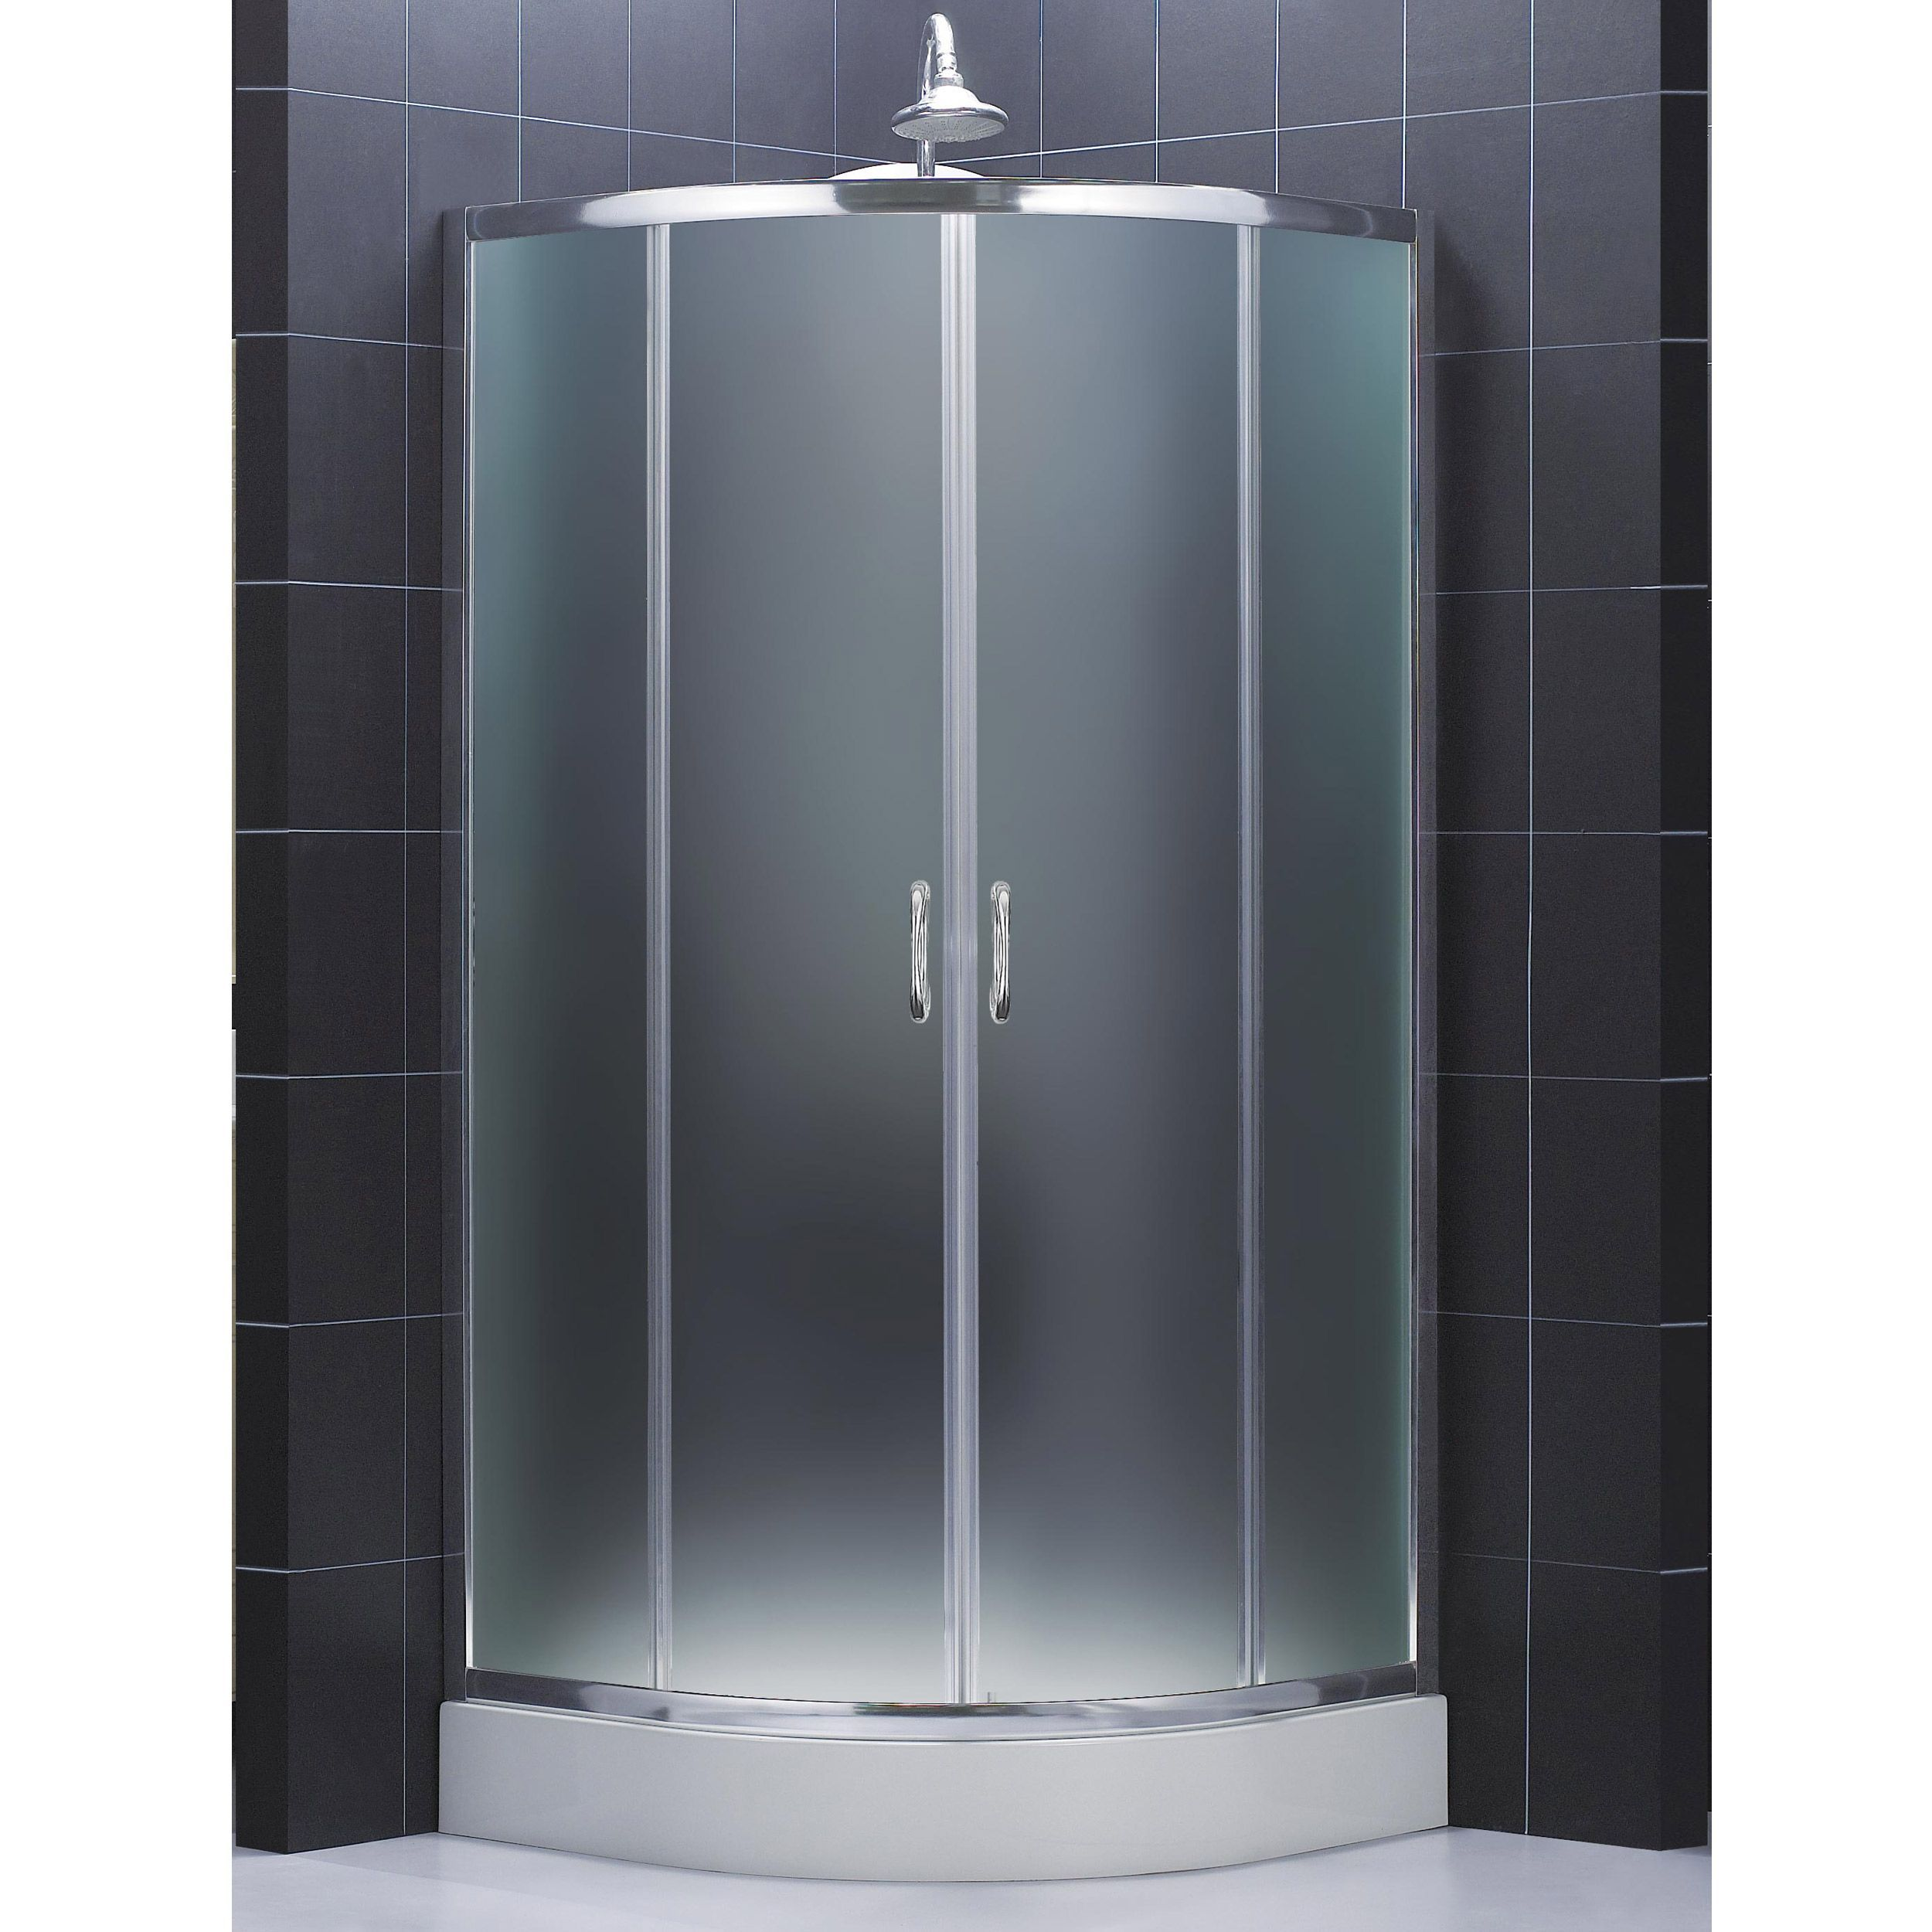 corner shower enclosure kits. DreamLine shower kits provide a complete solution to makeover  space The PRIME